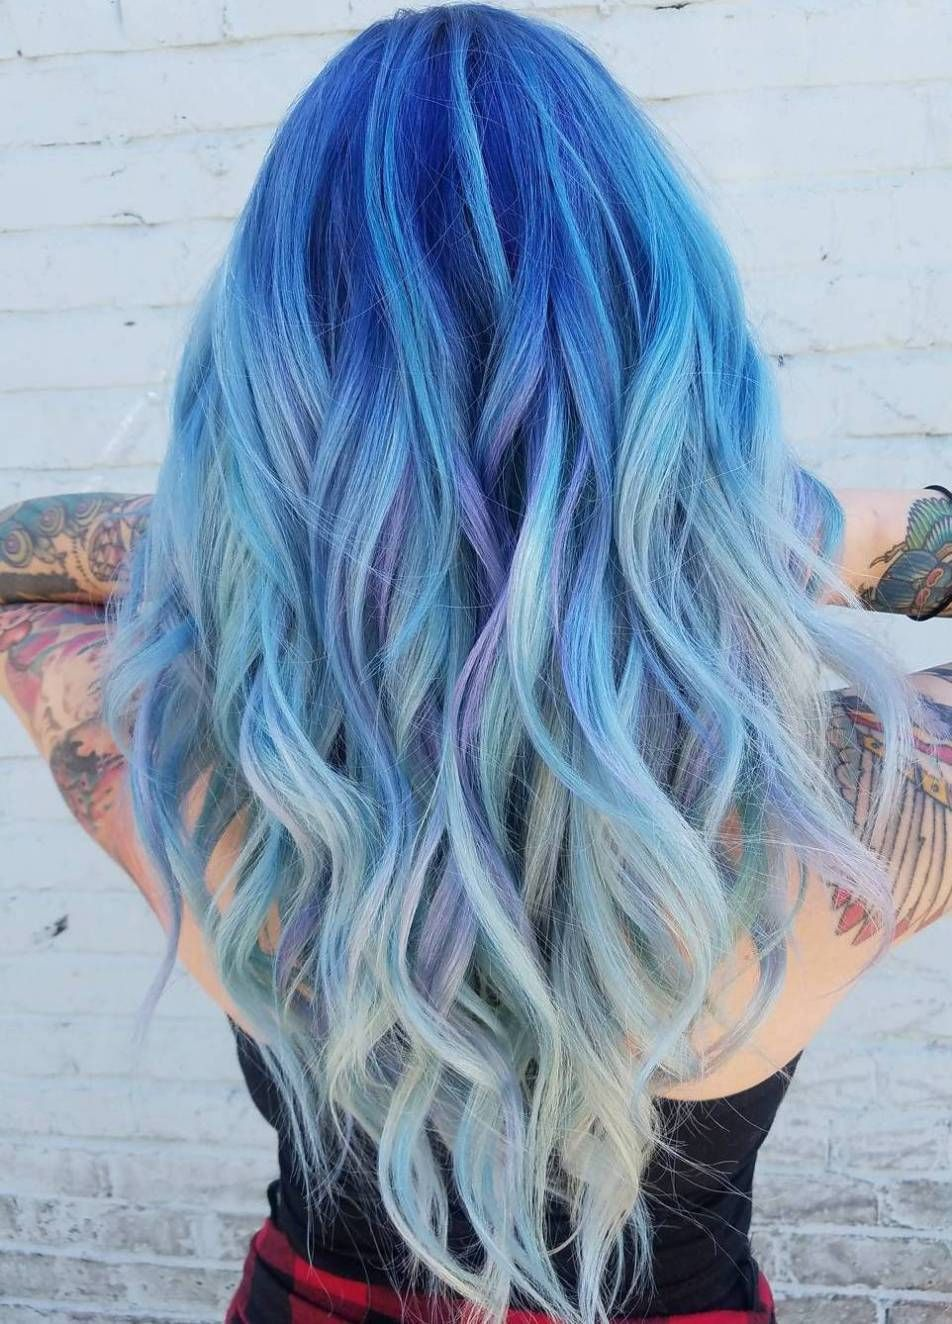 Communication on this topic: Hair Color Trend – Pretty in Pastels, hair-color-trend-pretty-in-pastels/